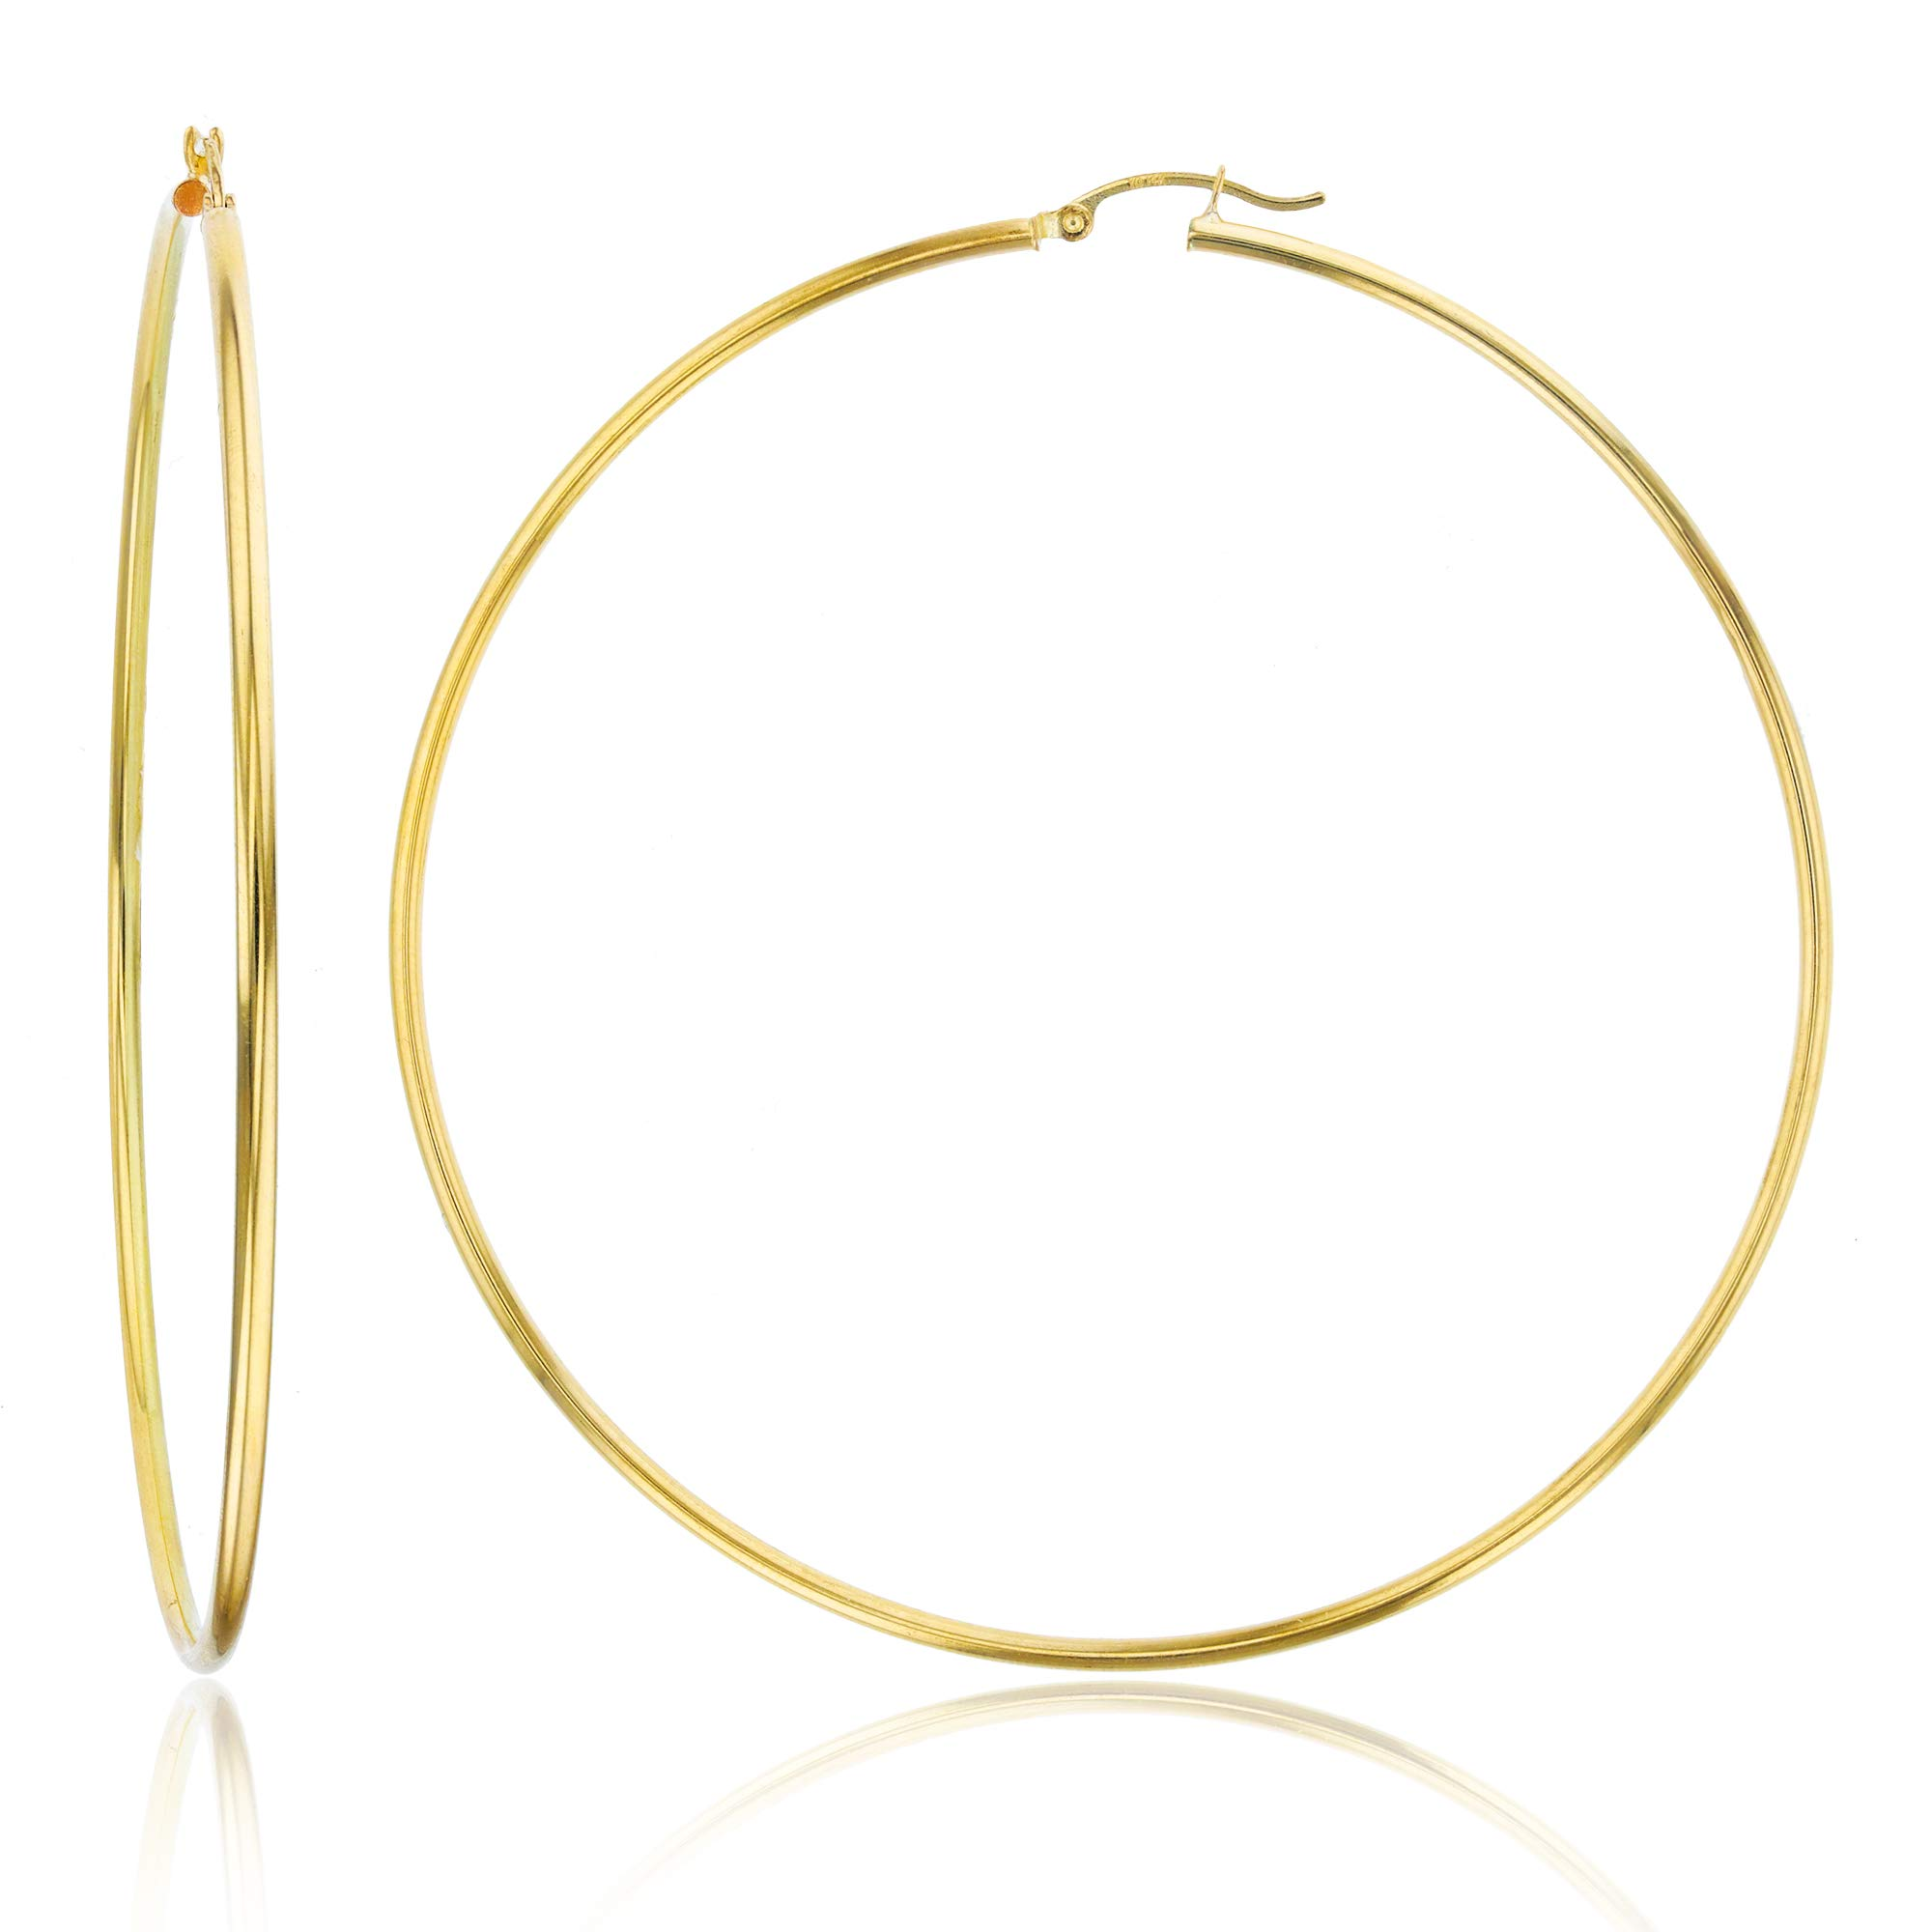 14k Yellow Gold Solid Polished Round Hoop Earrings for Women | 2mm Thick | Classic Style | Round Hoop Earrings | Secure Click-Top | Shiny Polished Earrings for Women, 2x80mm by Decadence